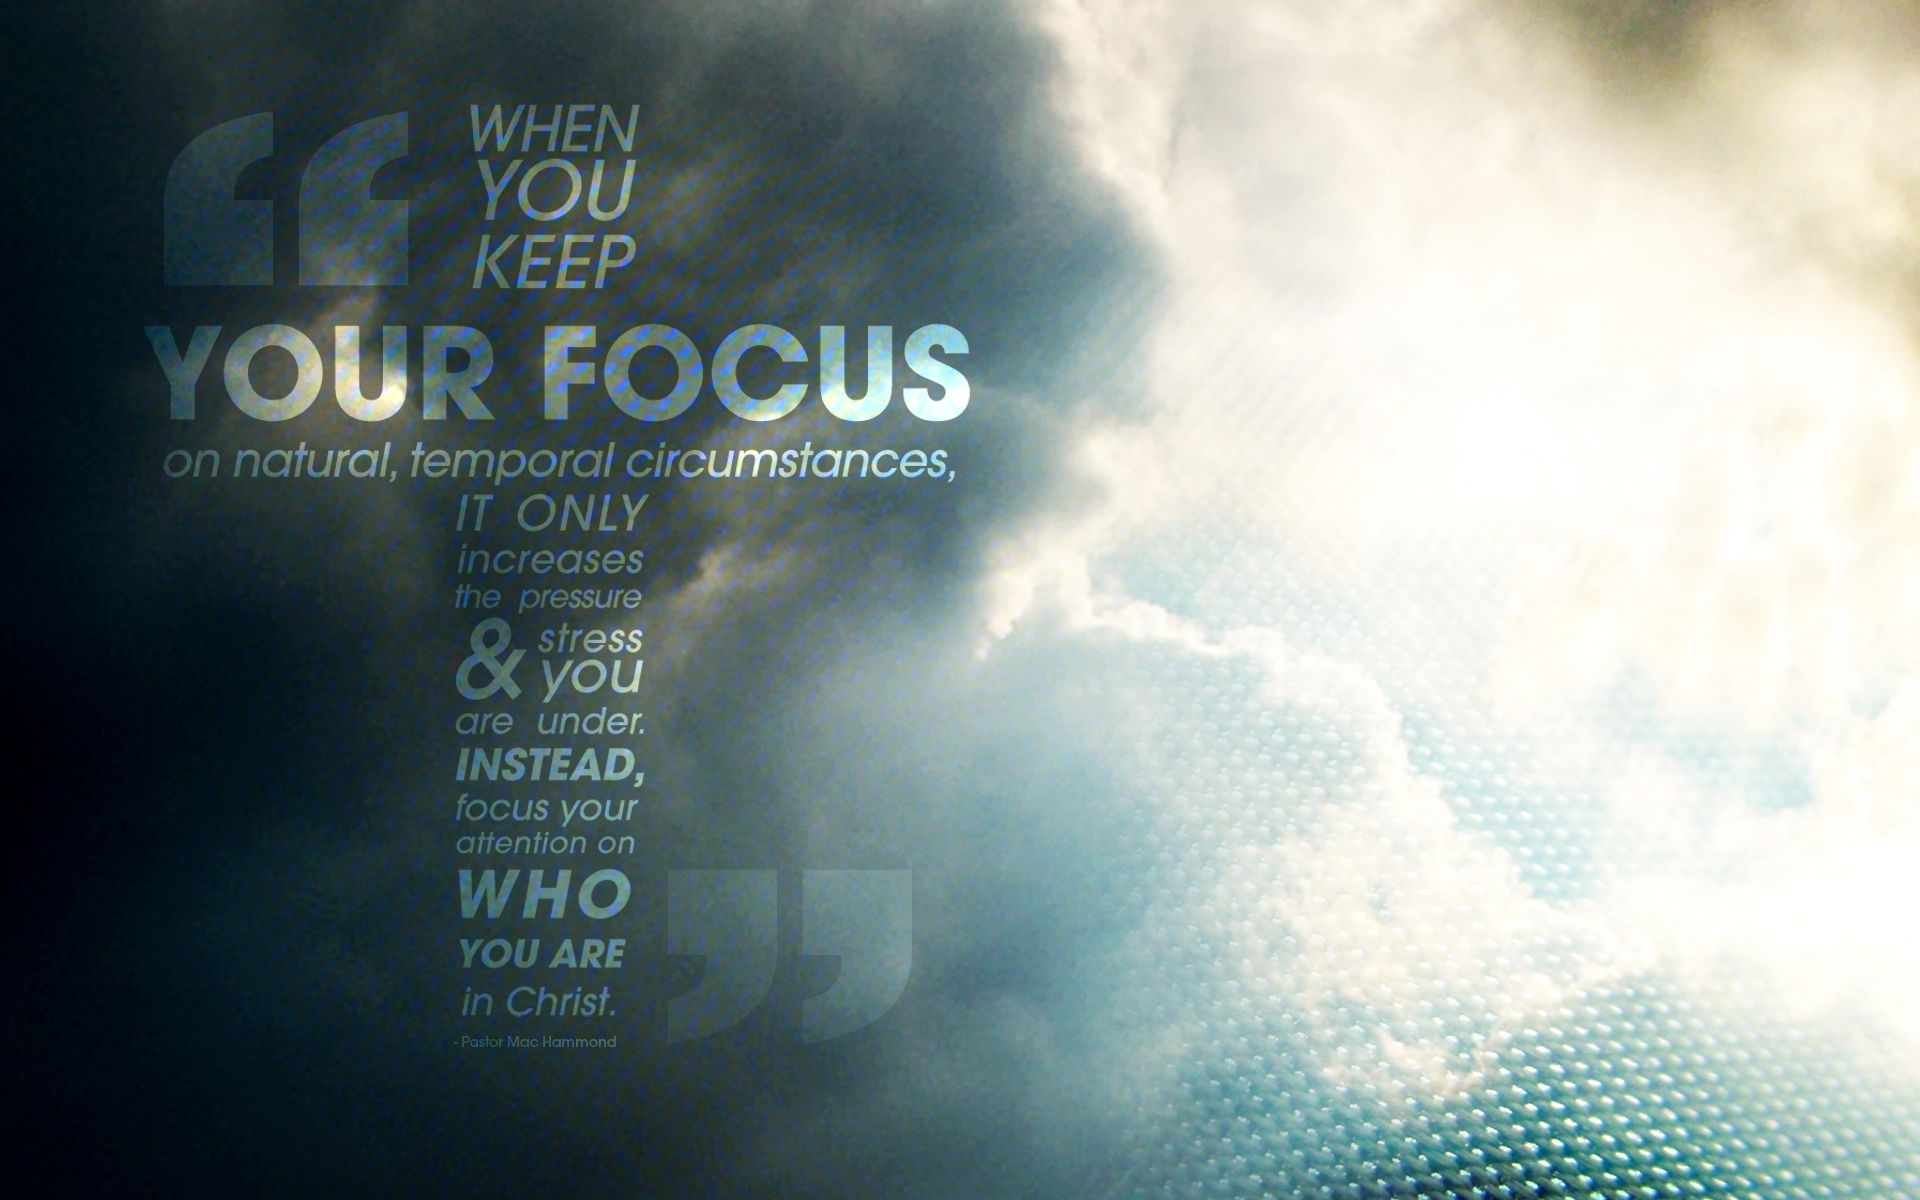 Focus your attention on who you are in Christ. // A new ...